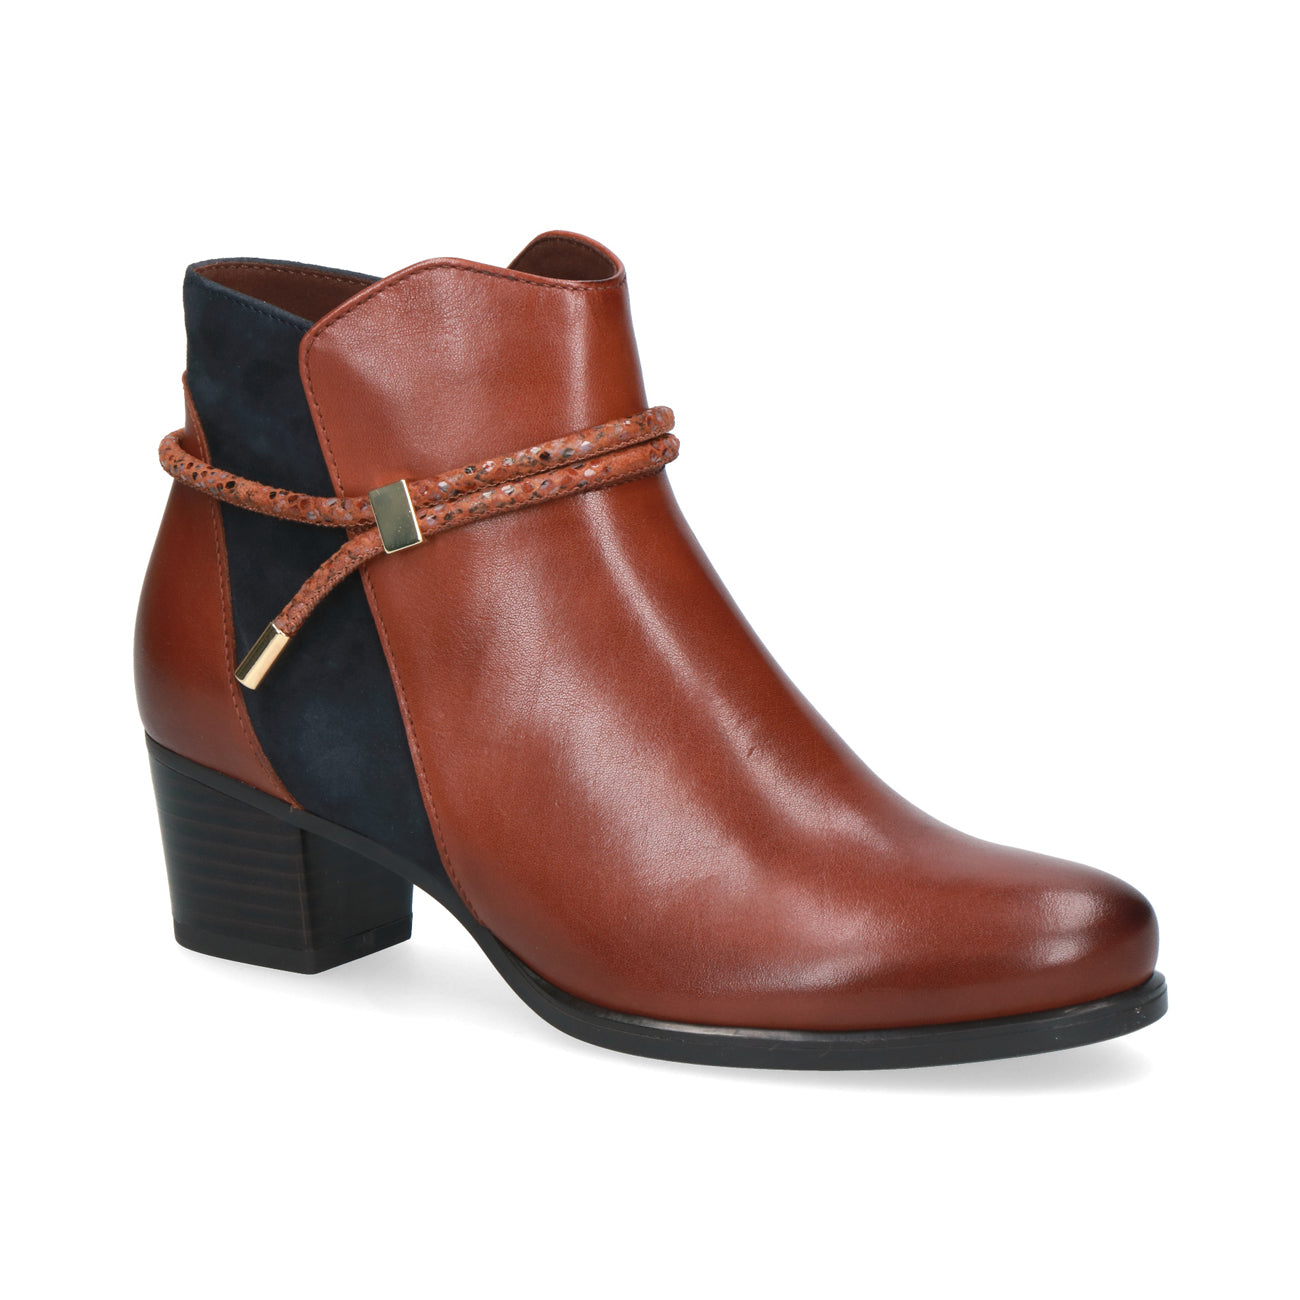 Caprice Low Heeled Ankle Boot | 25307 | Cognac/Ocean